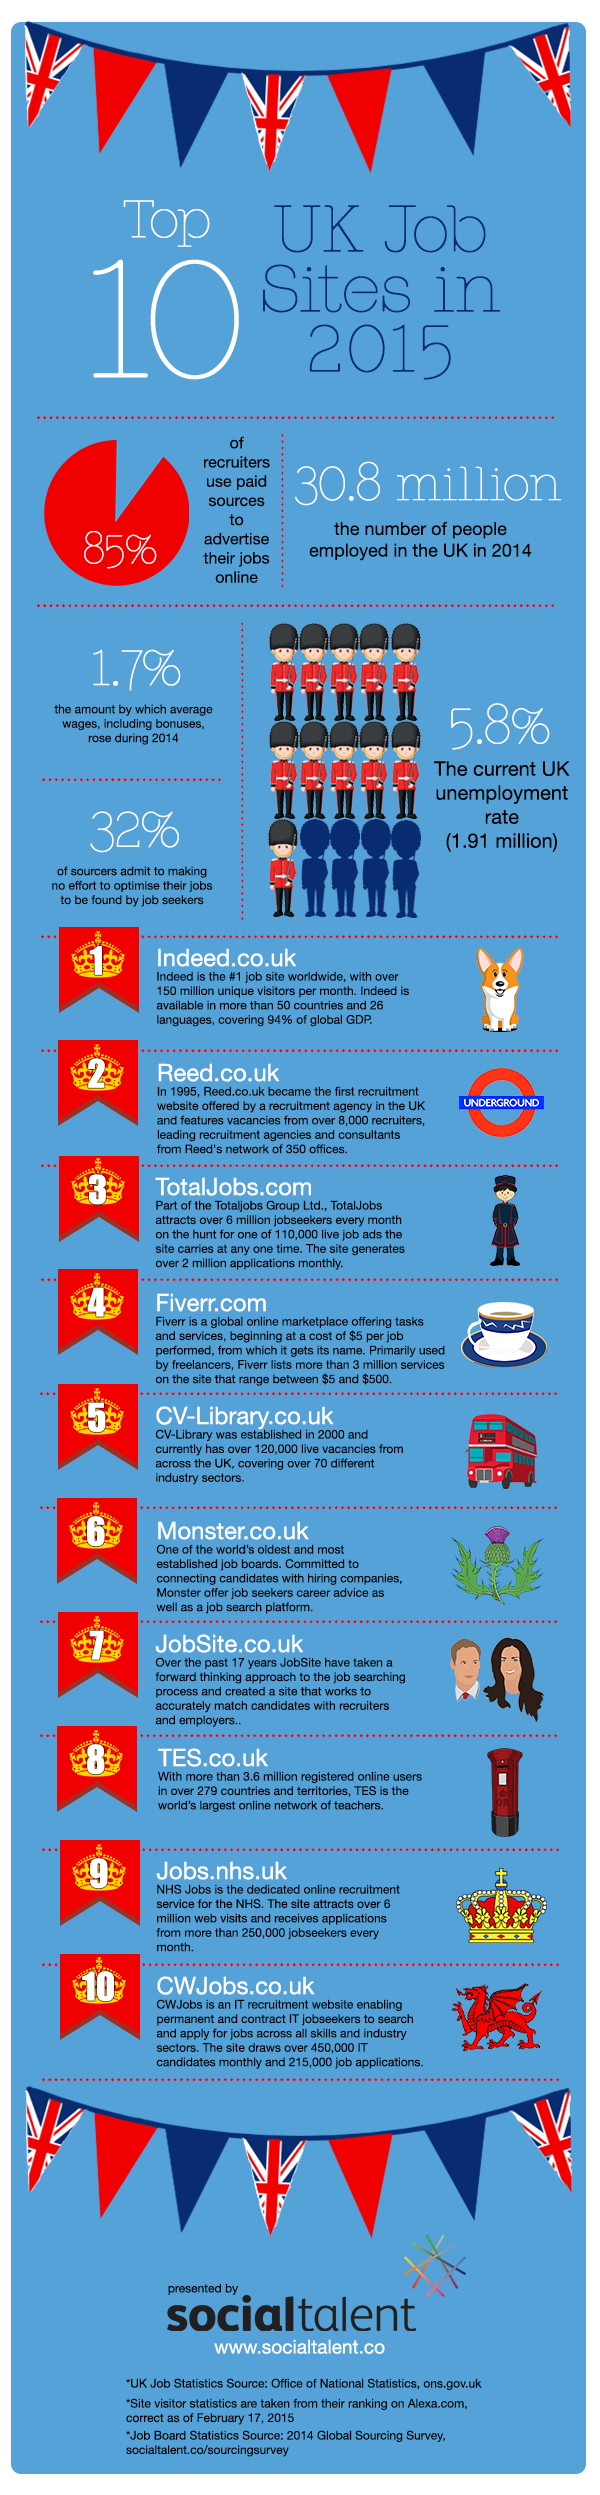 top job search sites